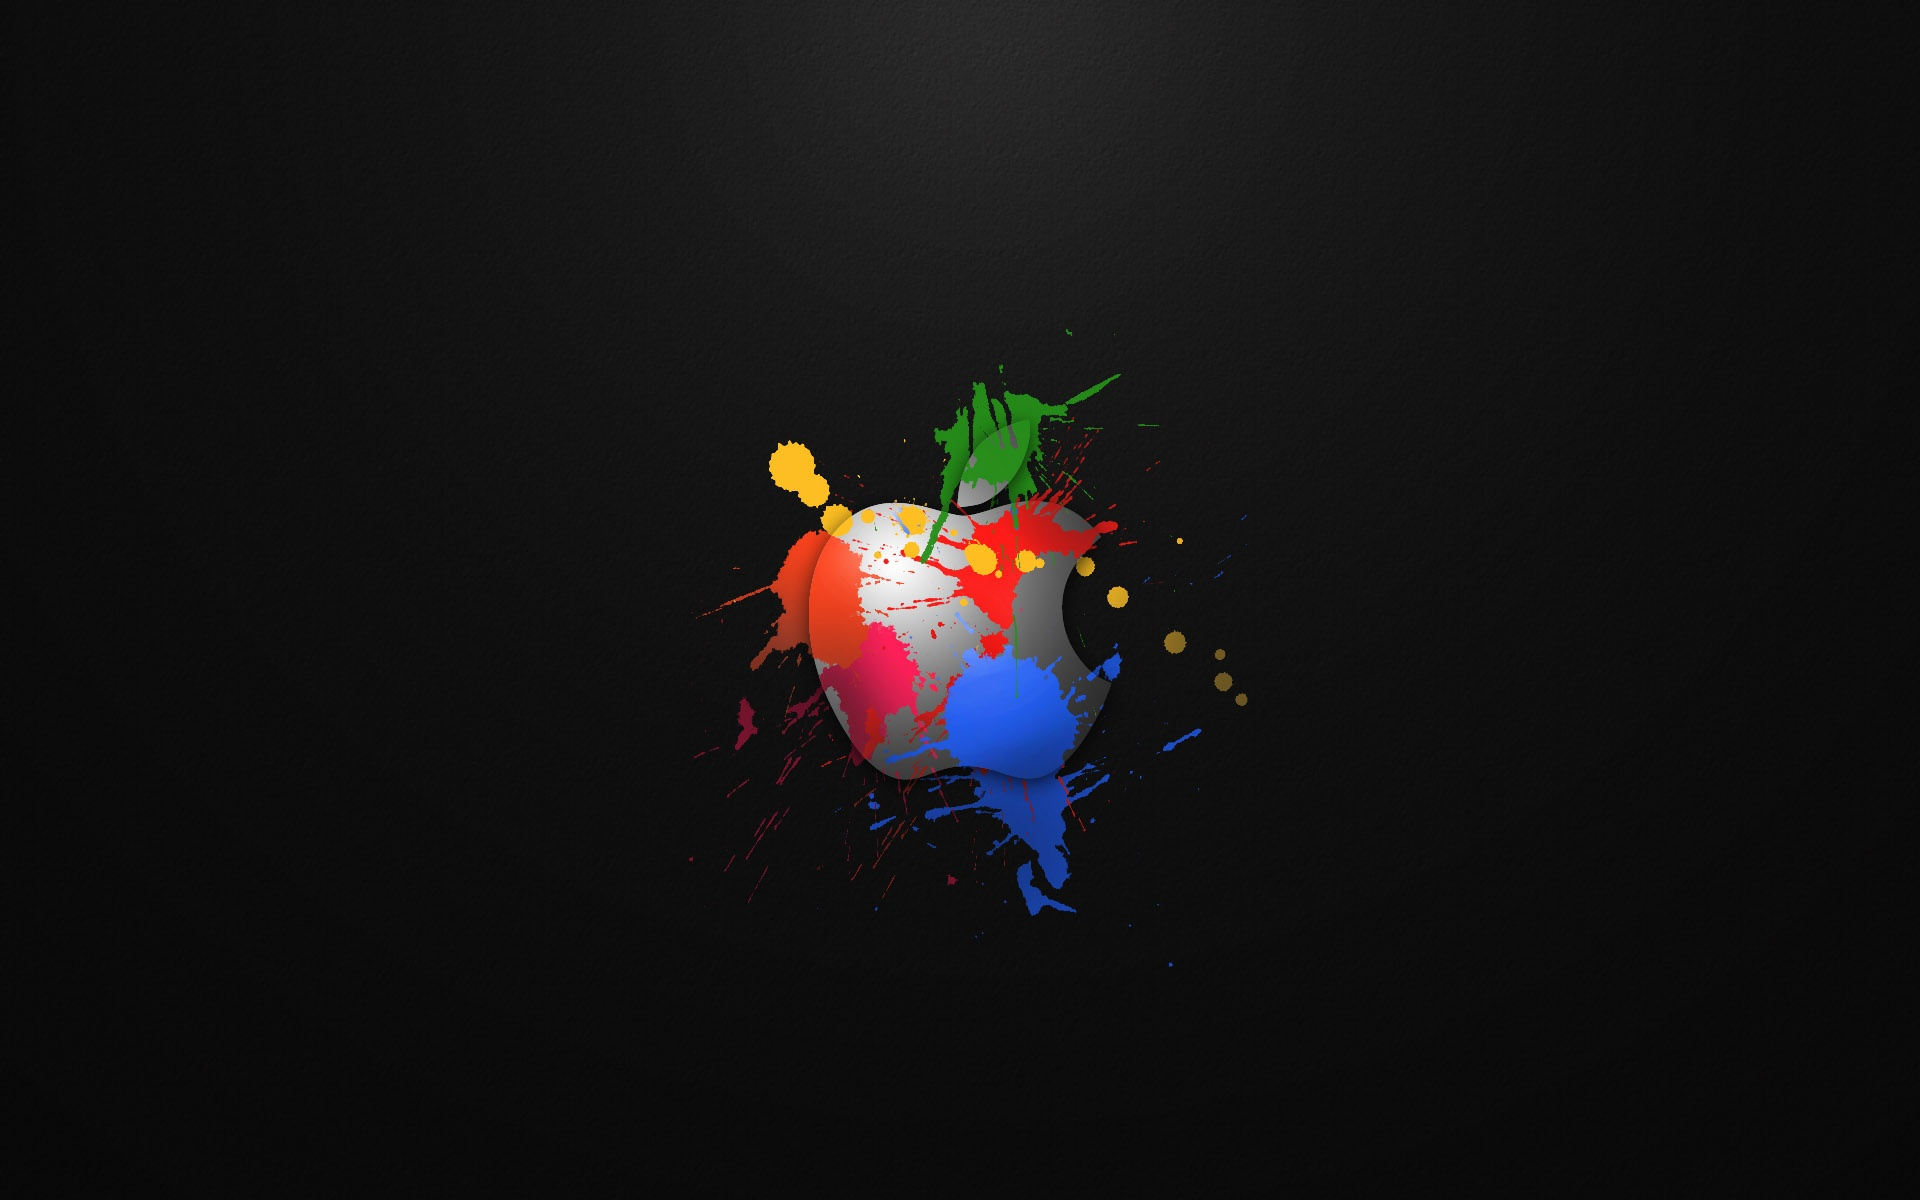 apple desktop background - sf wallpaper